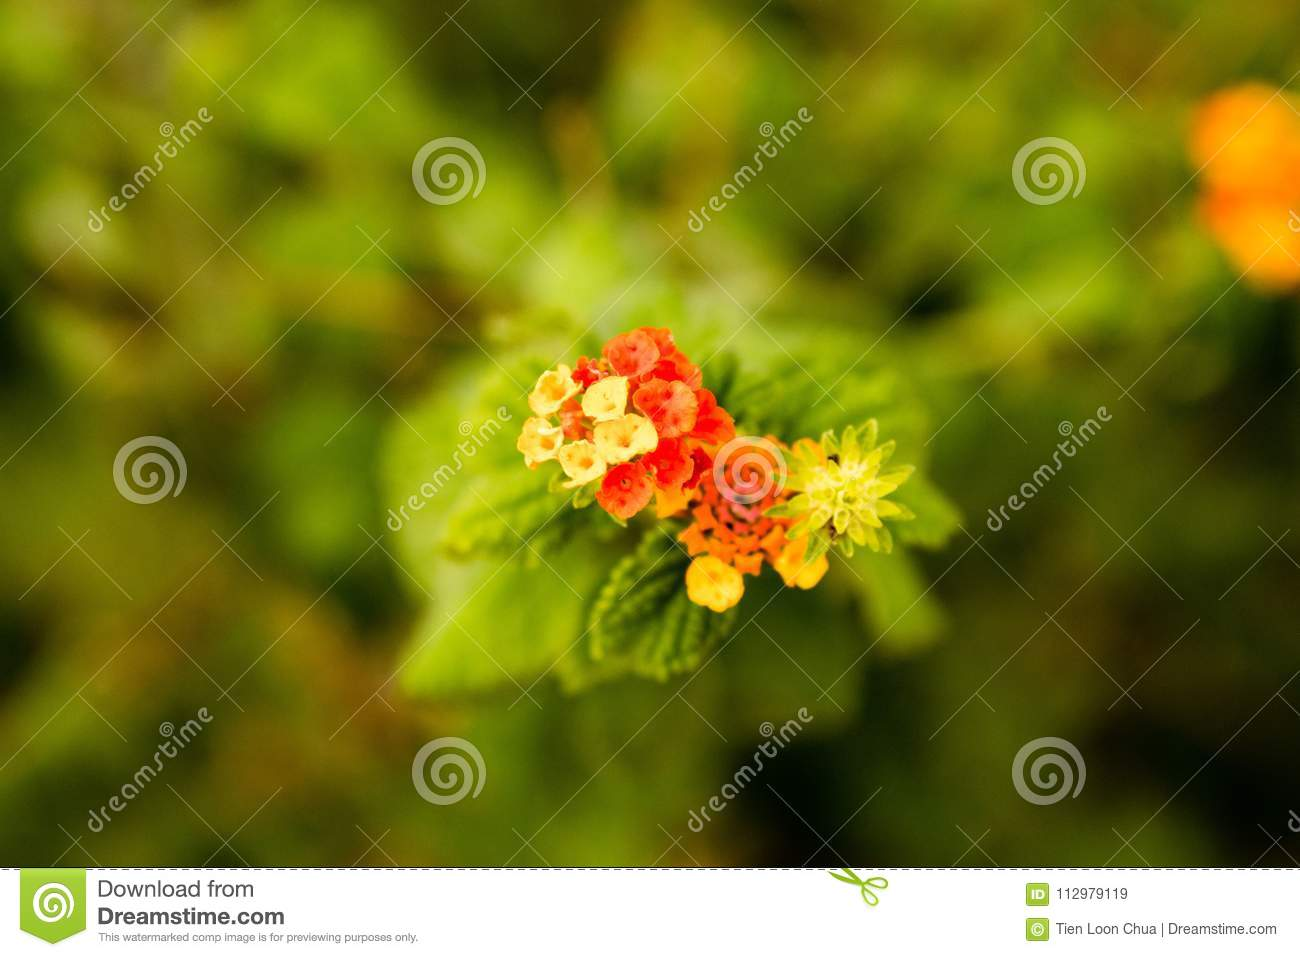 Cluster or red, orange and yellow flowers